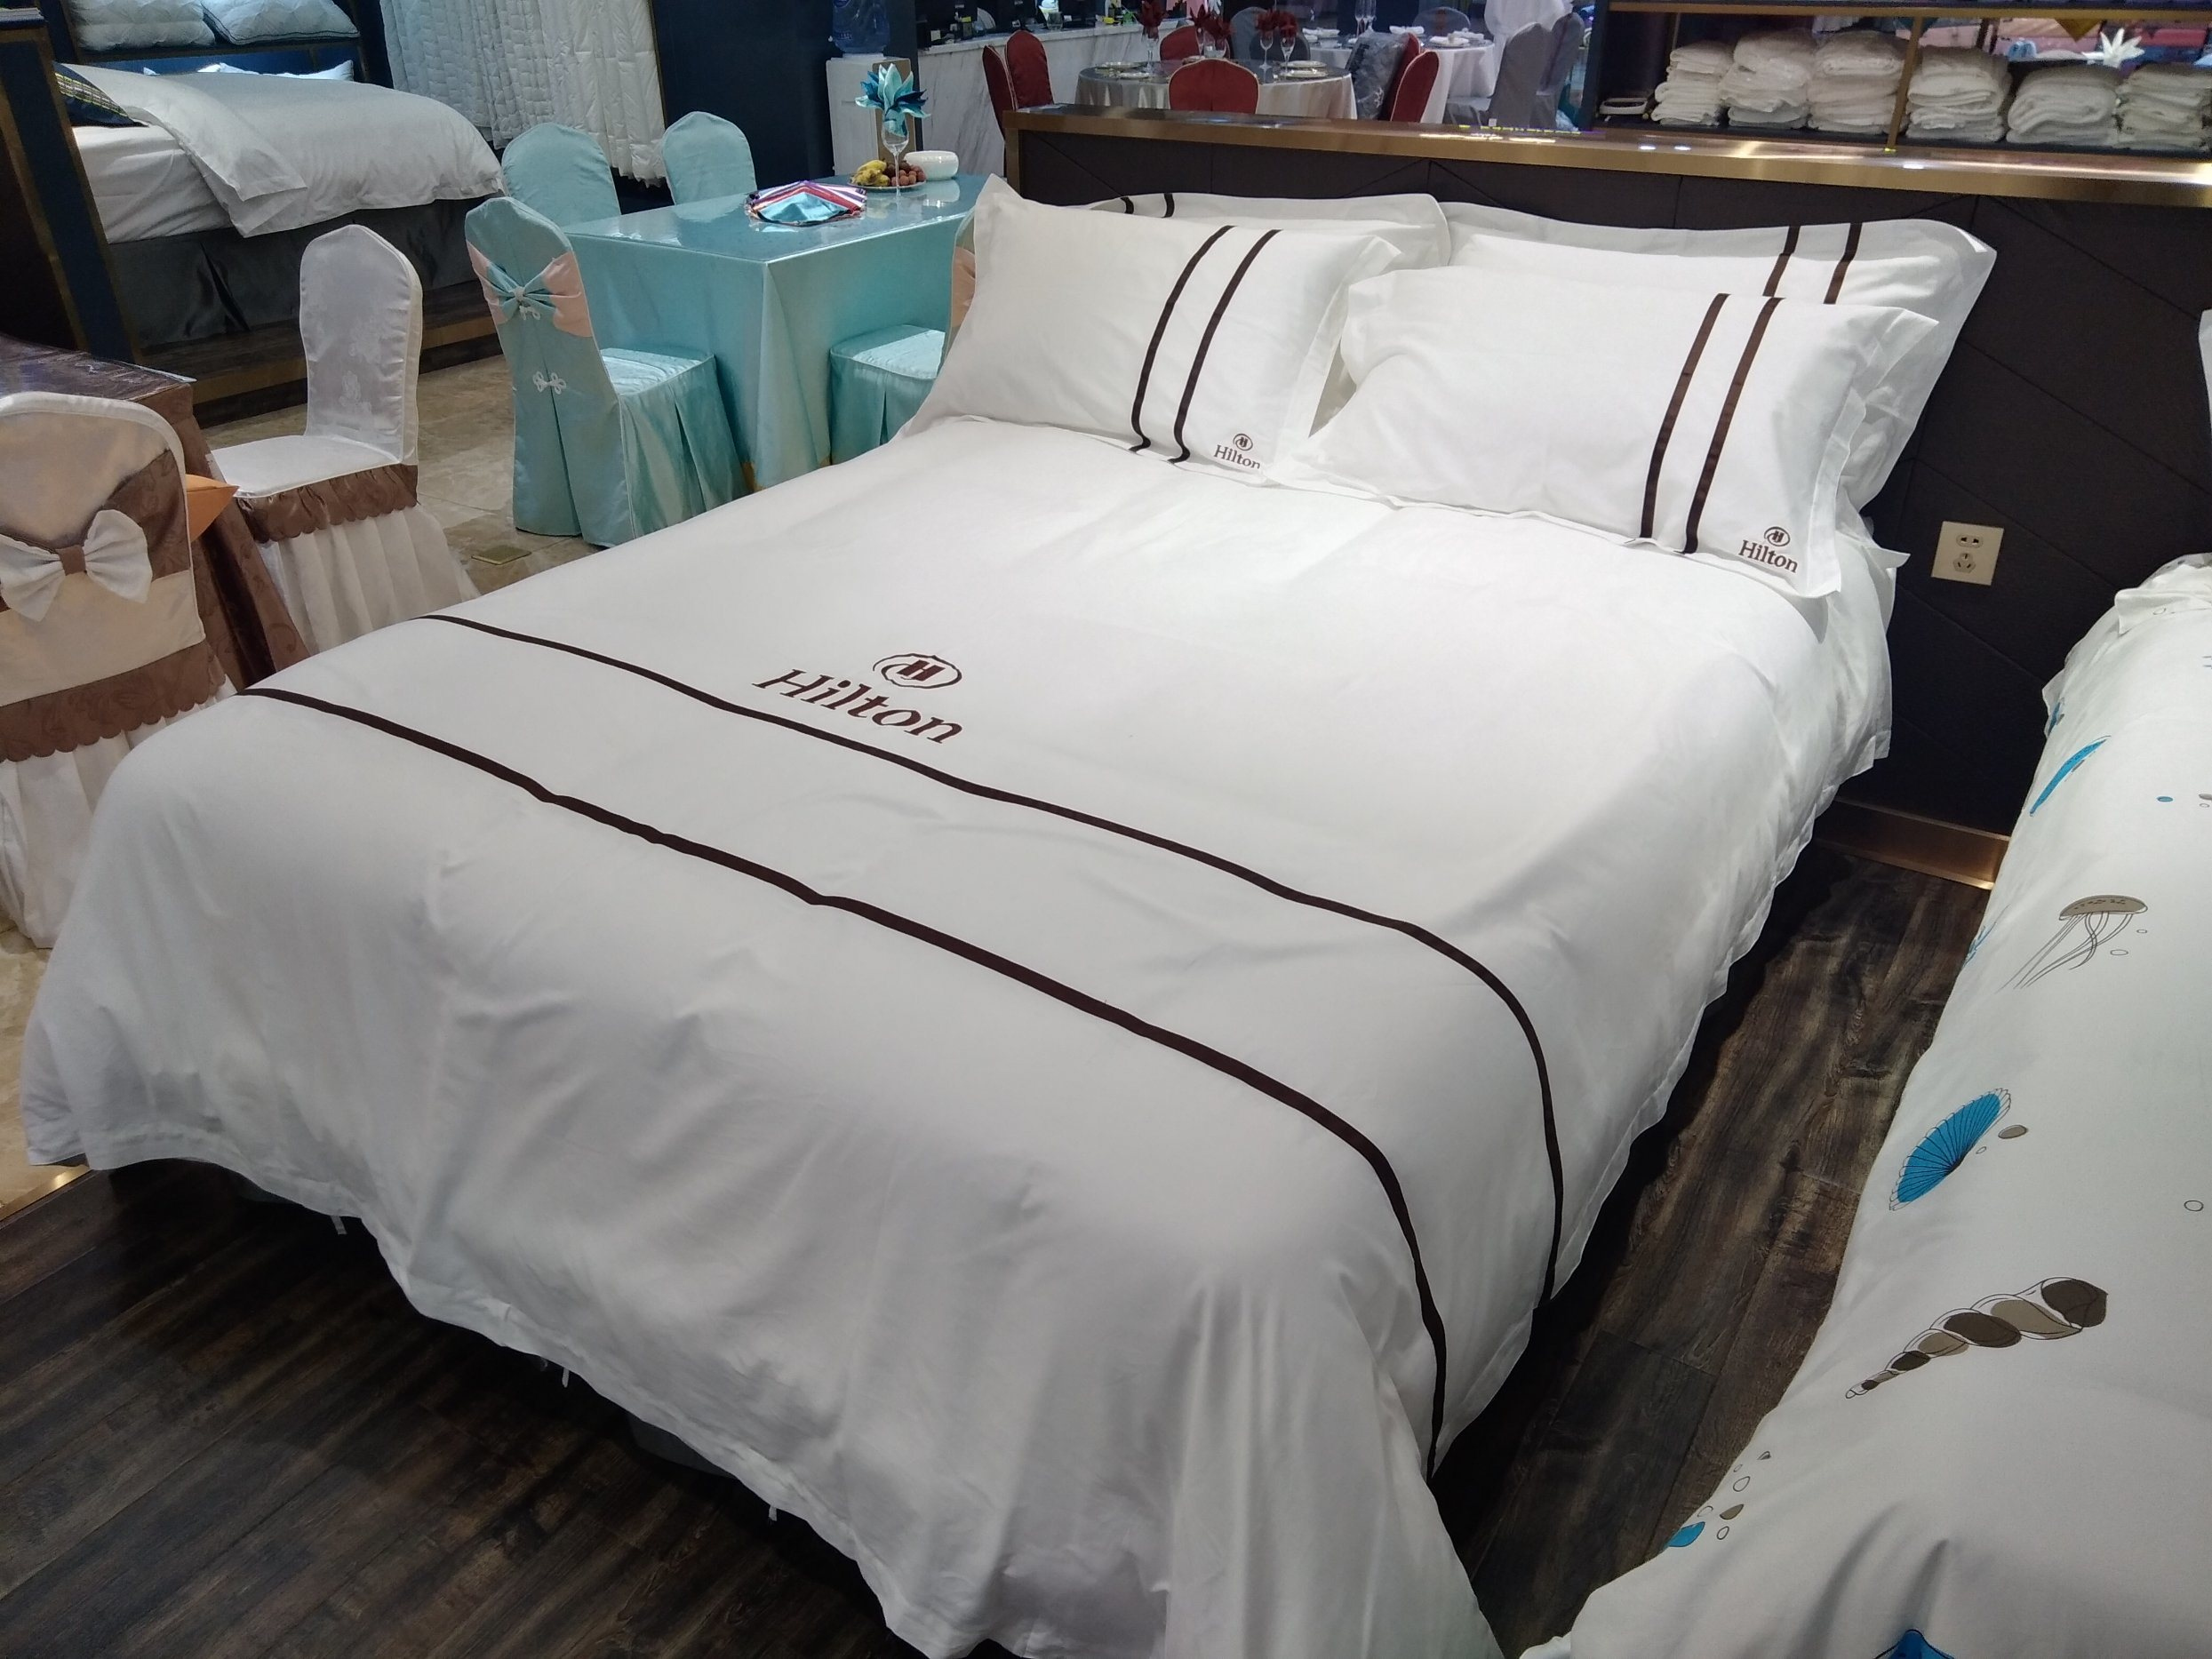 China Hotel Supplier Hand Made Bed Sheet Embroidery Bed Cover Designs China Hotel Supply And Hotel Amenities Price